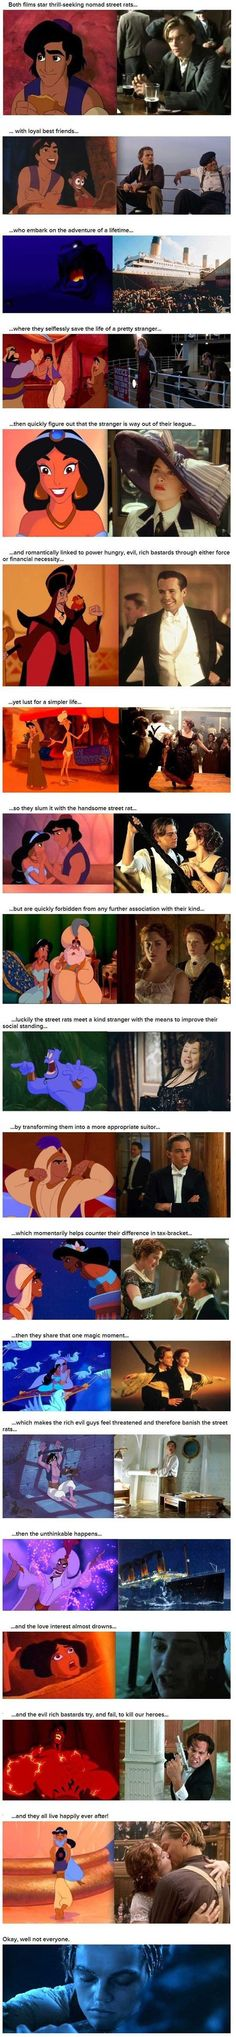 18 reasons aladdin and titanic are the same movie<<Was that last part necessary? (Although, Aladdin is magic and Titanic was realistic, so the only way to be together was for them to be reunited in death.sort of the same there. Disney Pixar, Disney Memes, Disney And Dreamworks, Funny Disney, Disney Quotes, Disney Crossovers, Disney Facts, Disney Villains, Disney Love